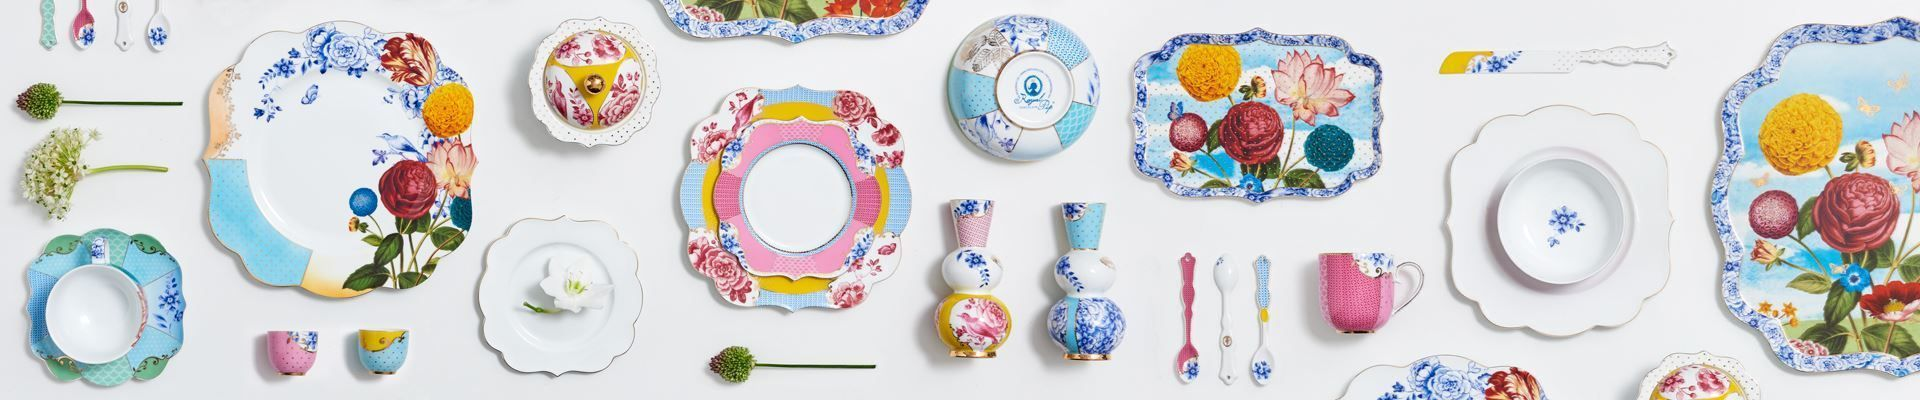 The Royal Multicoloured Porcelain Collection